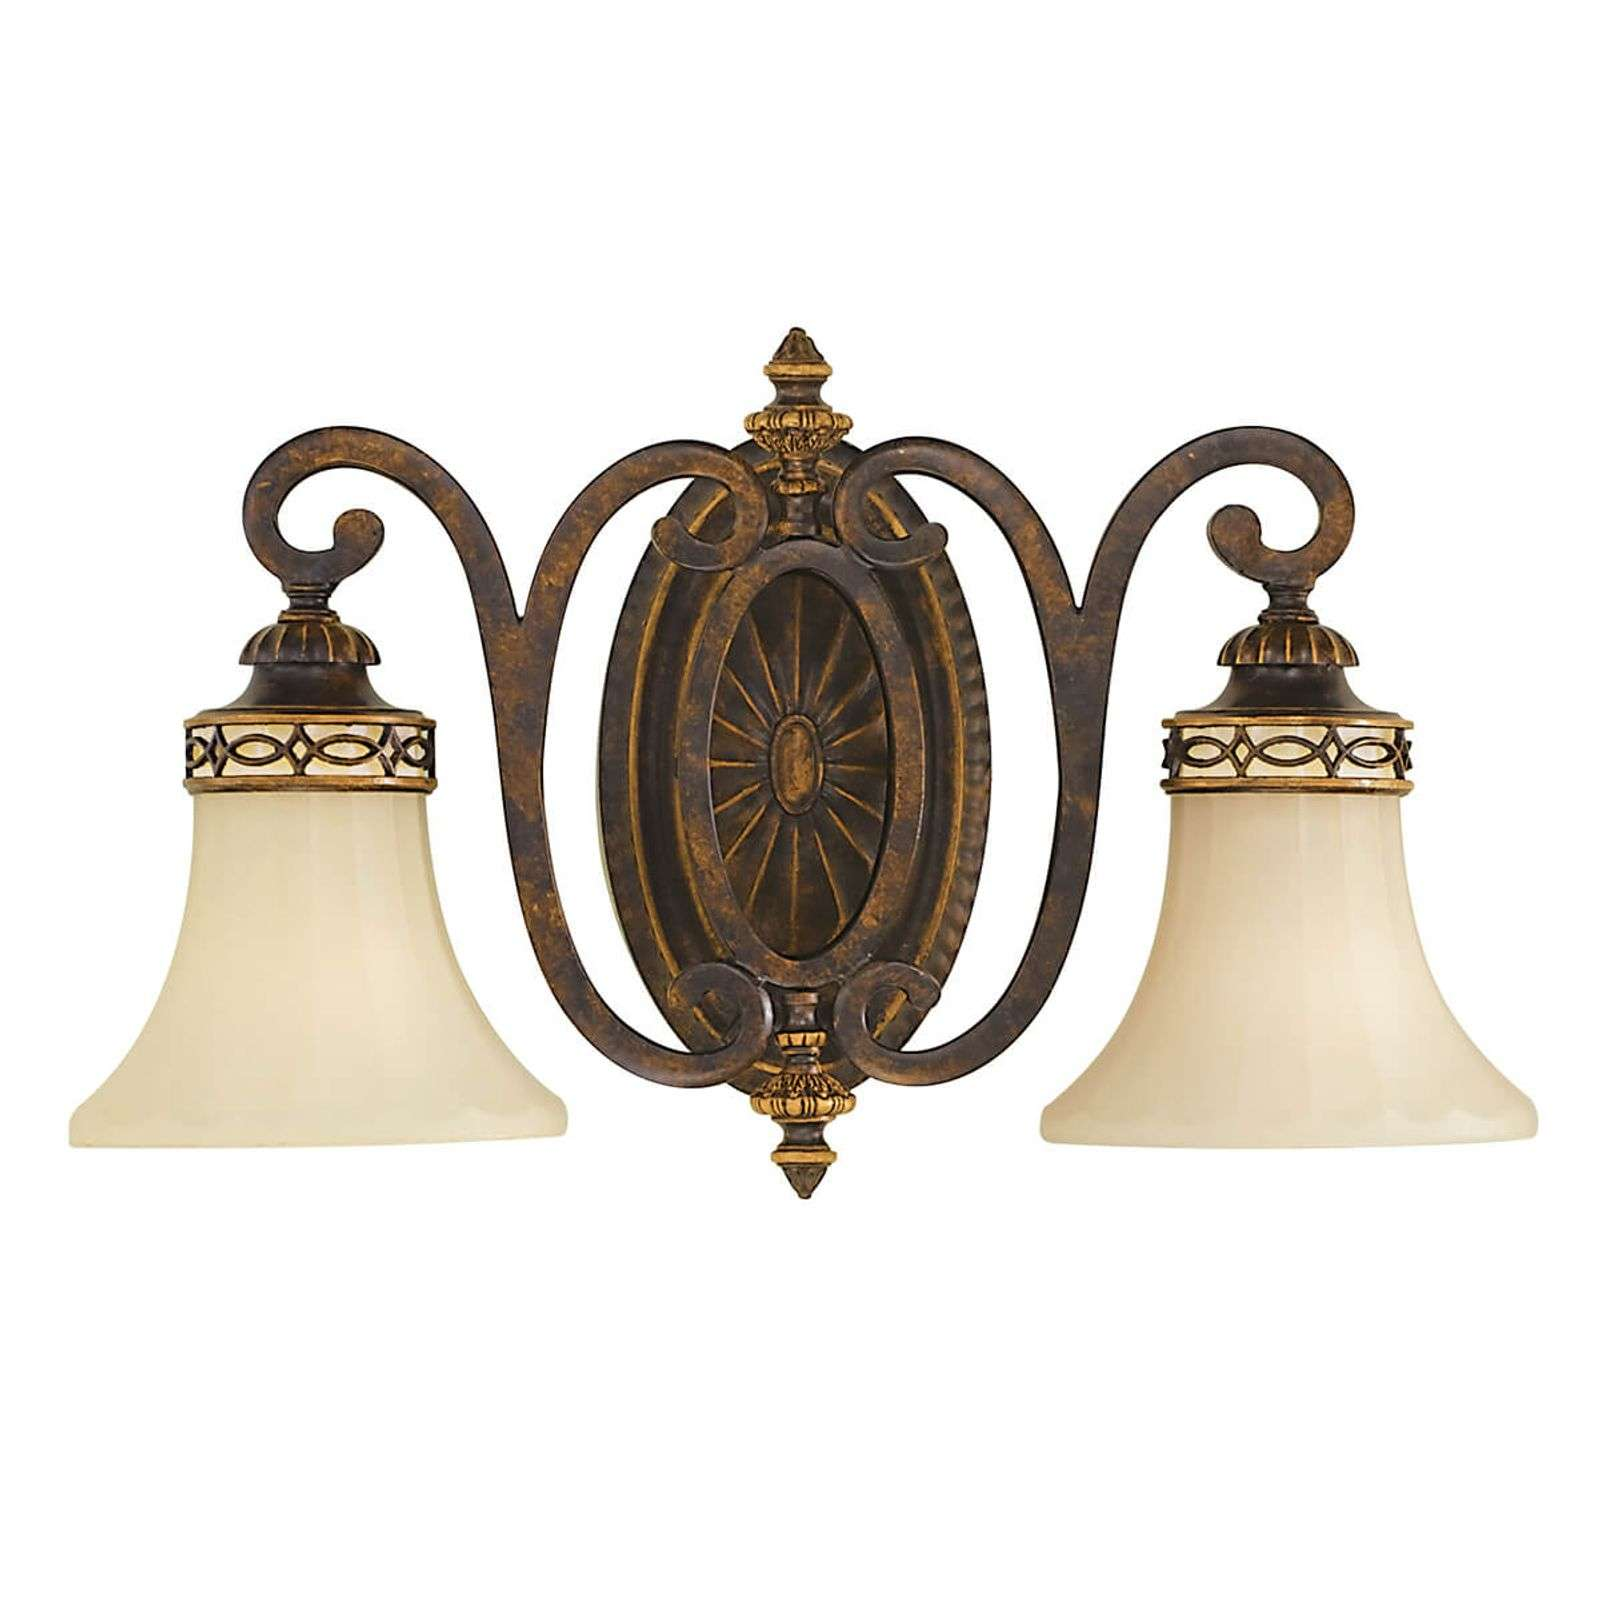 Wandlamp Drawing Room, met 2 lampjes, breed